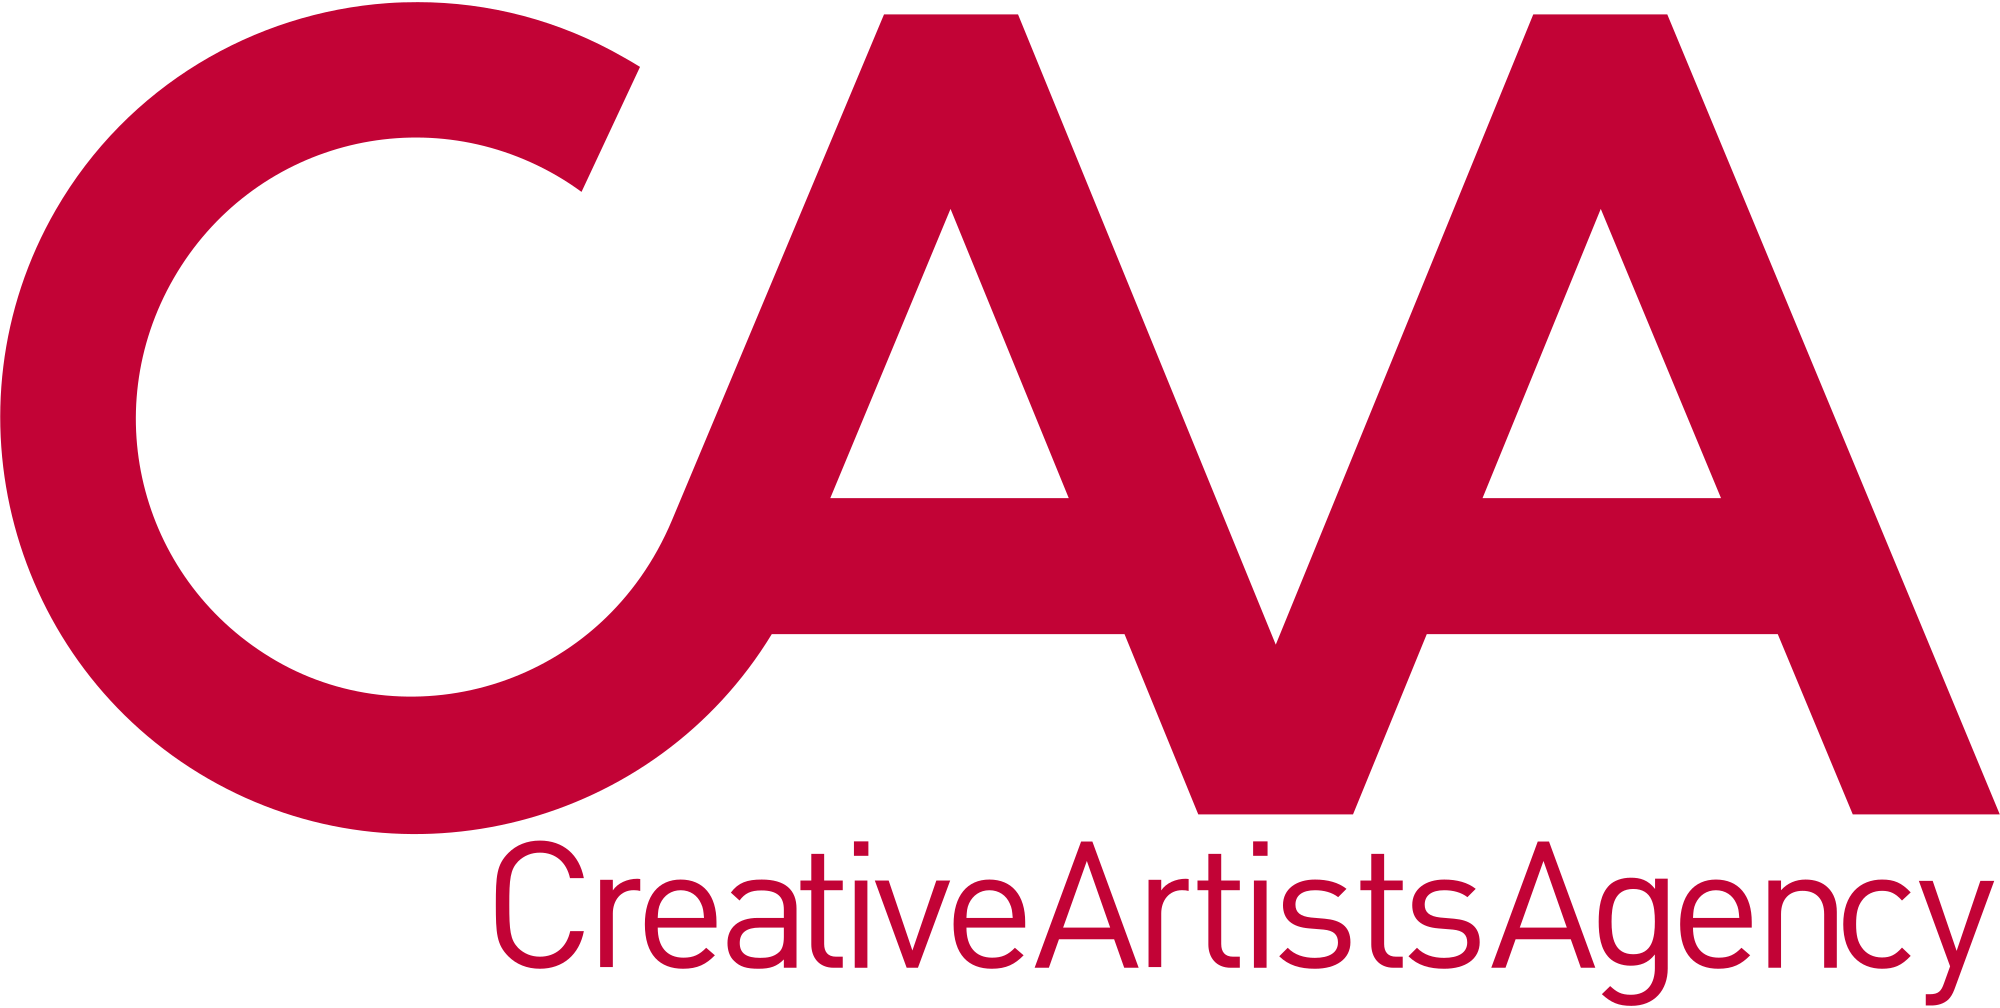 Creative Artists Agency Logo.png